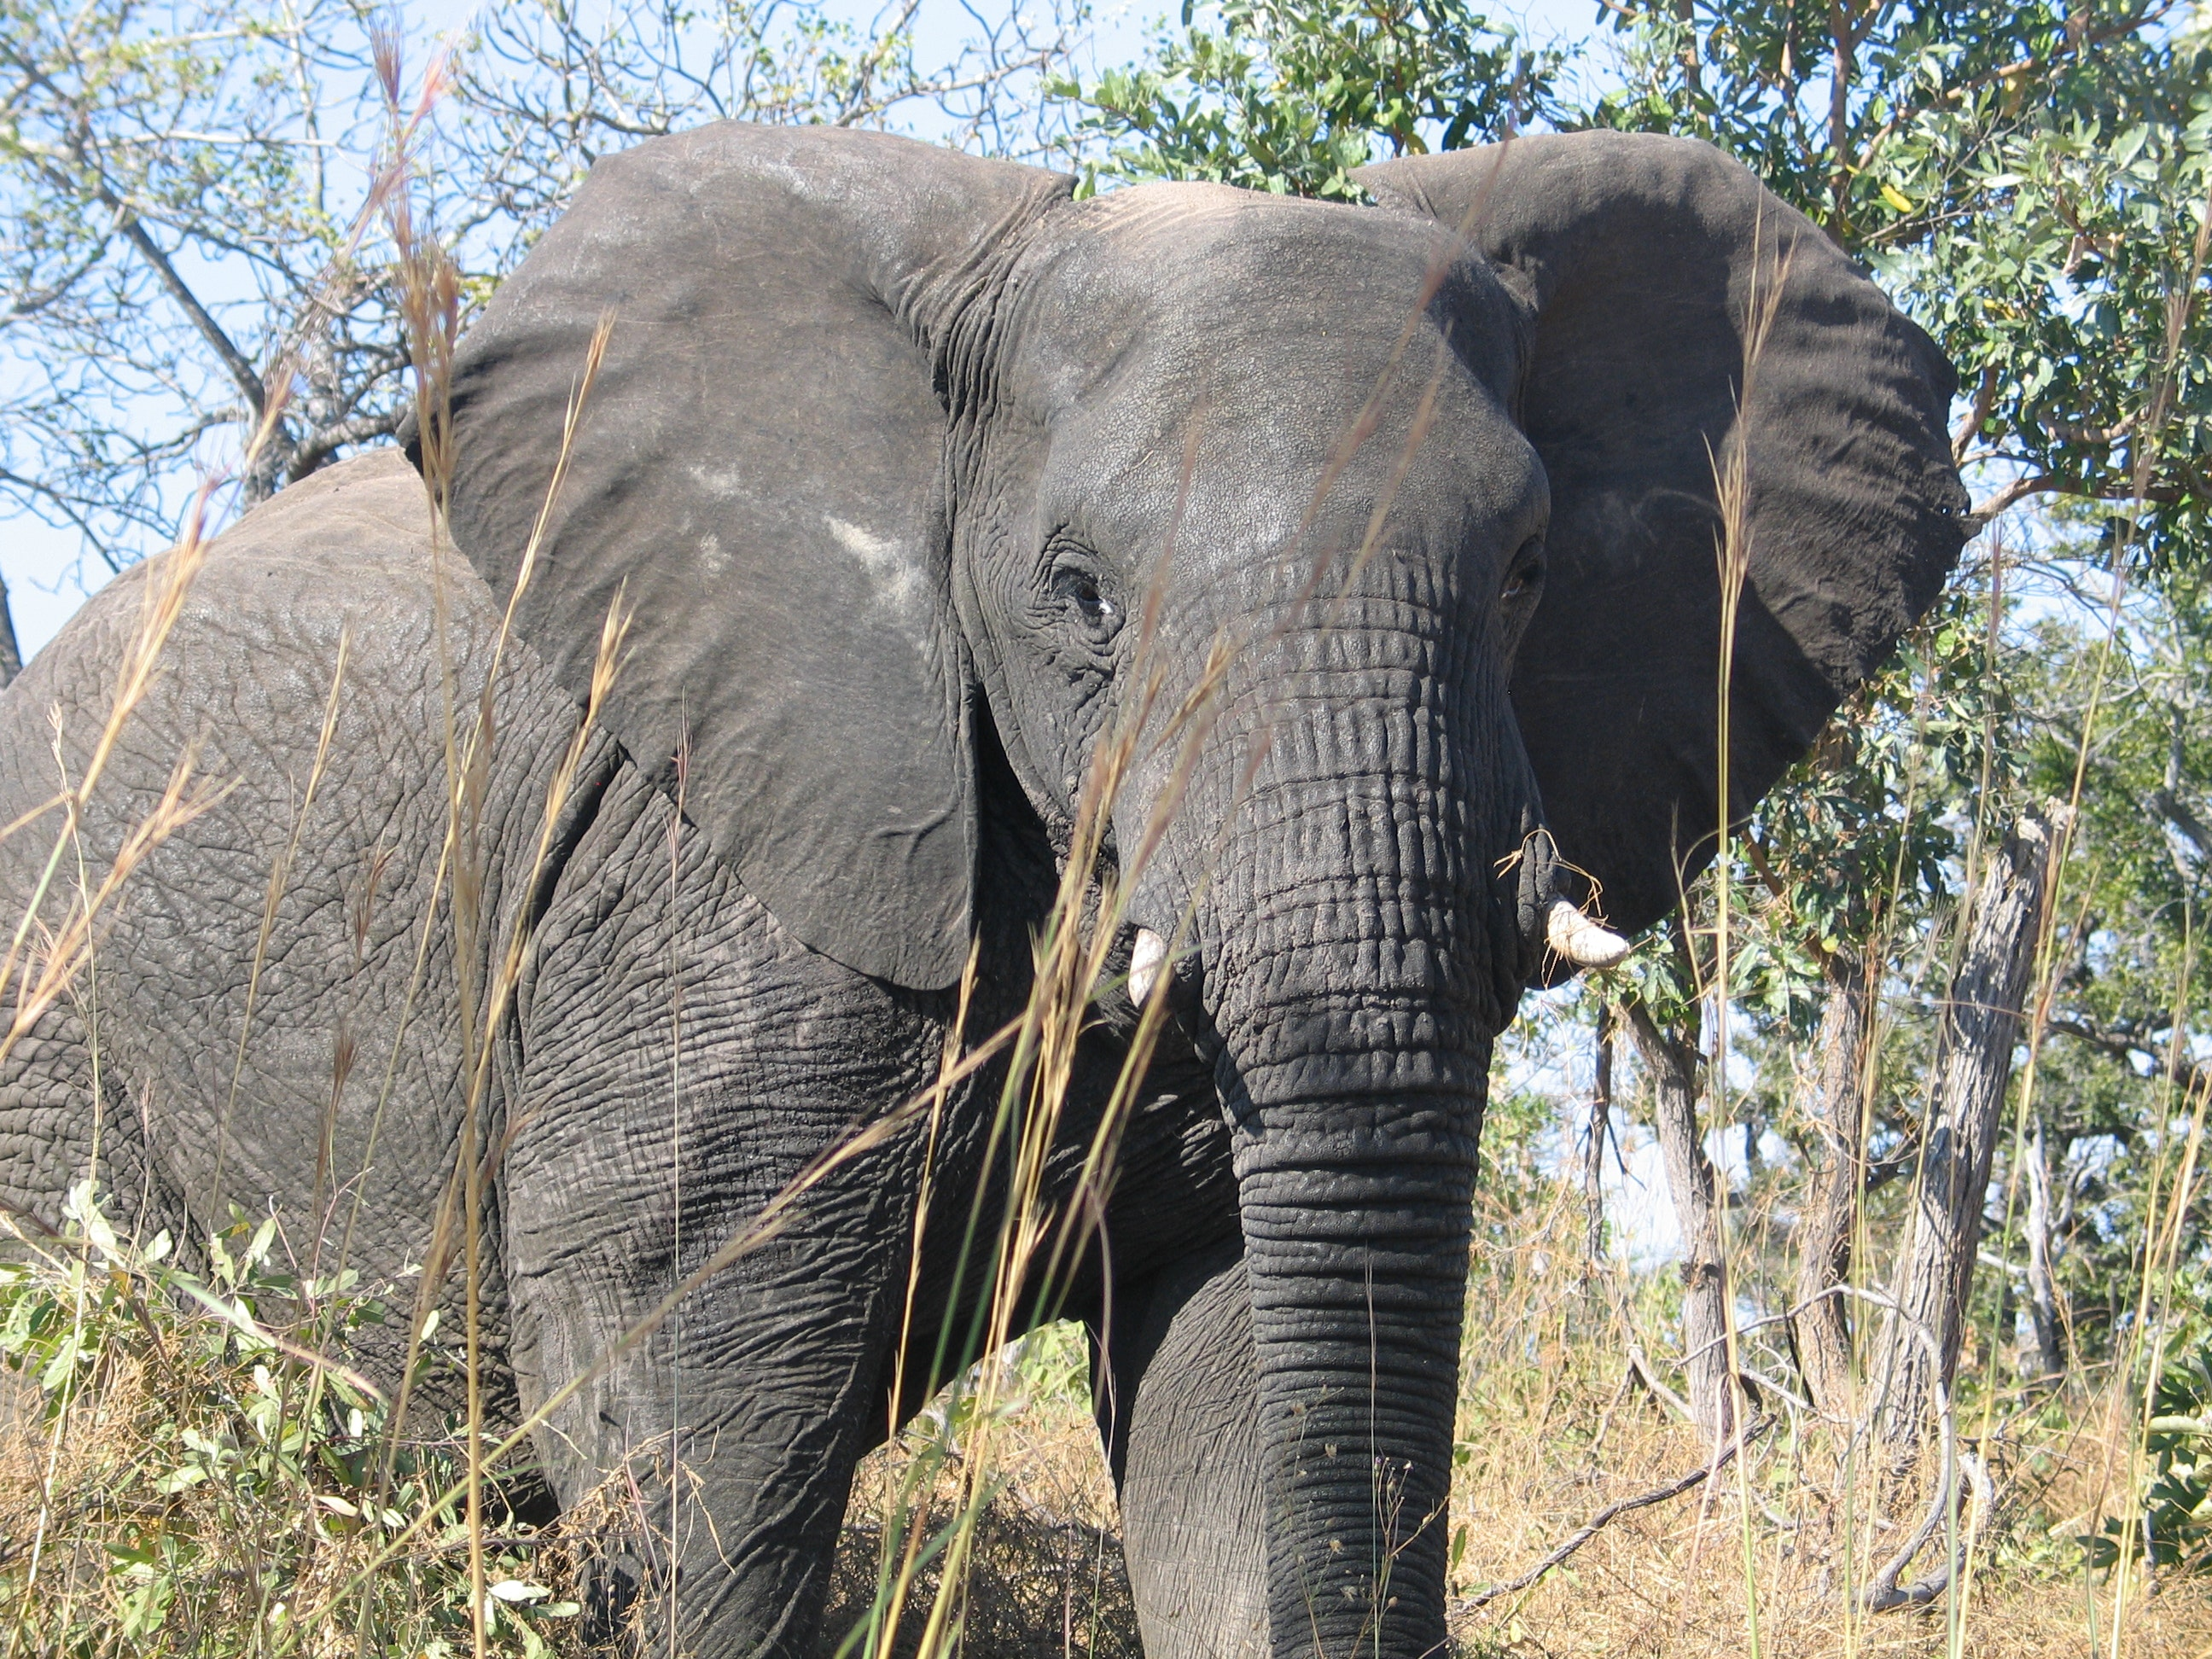 What elephants' unique brain structures suggest about their mental abilities